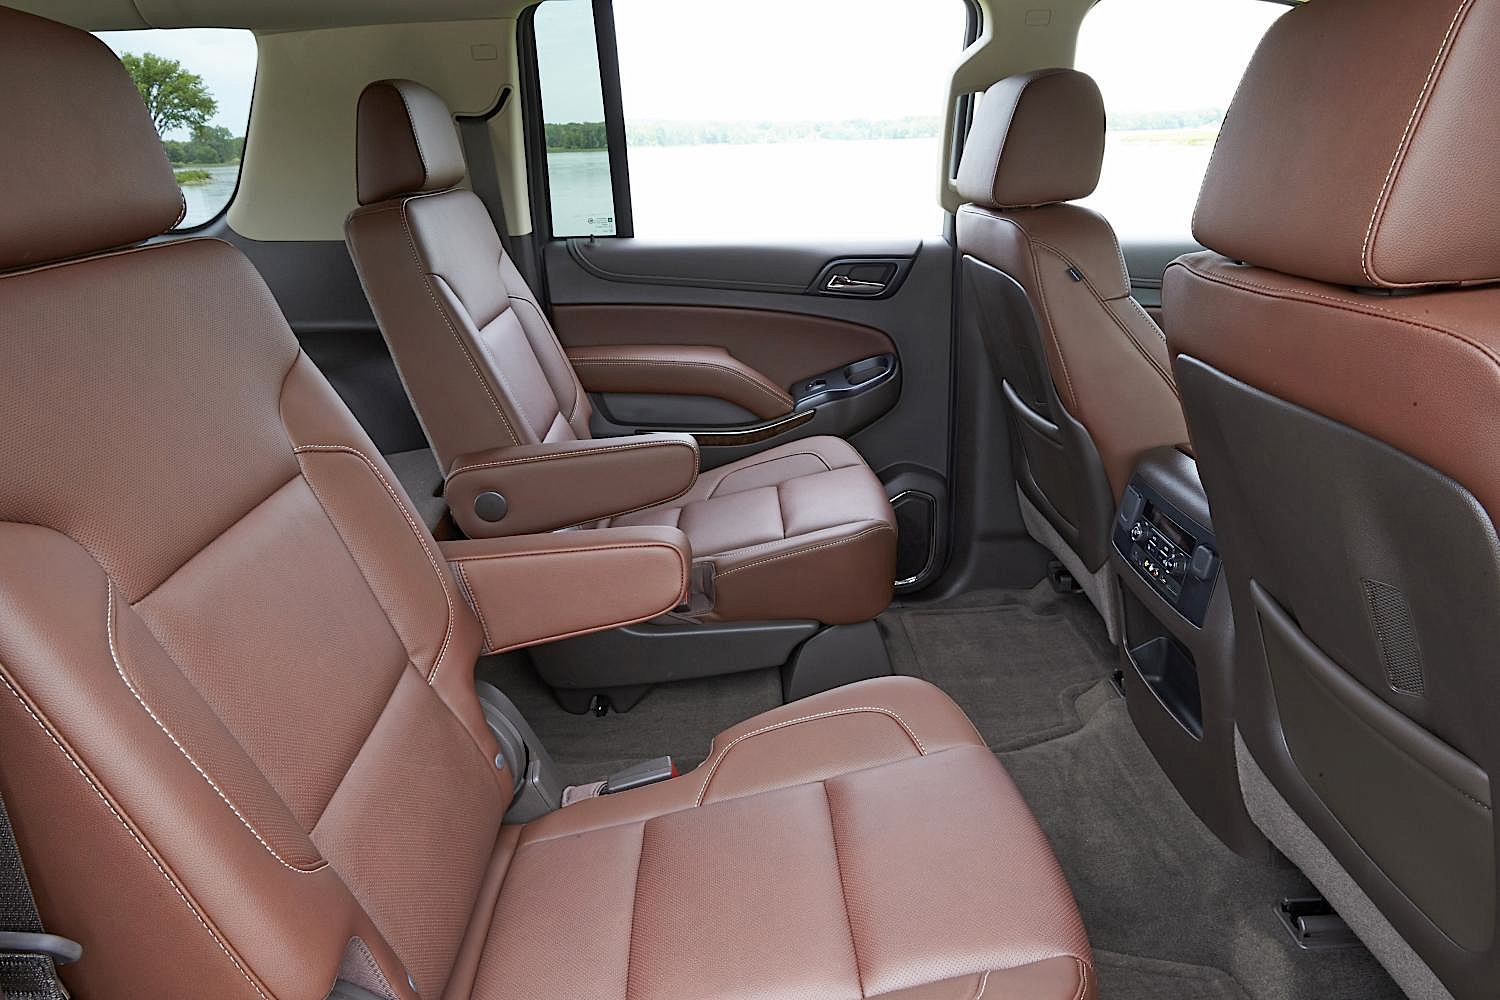 Is the 2015 Chevrolet Suburban the Unsung Hero of Family Road Trips